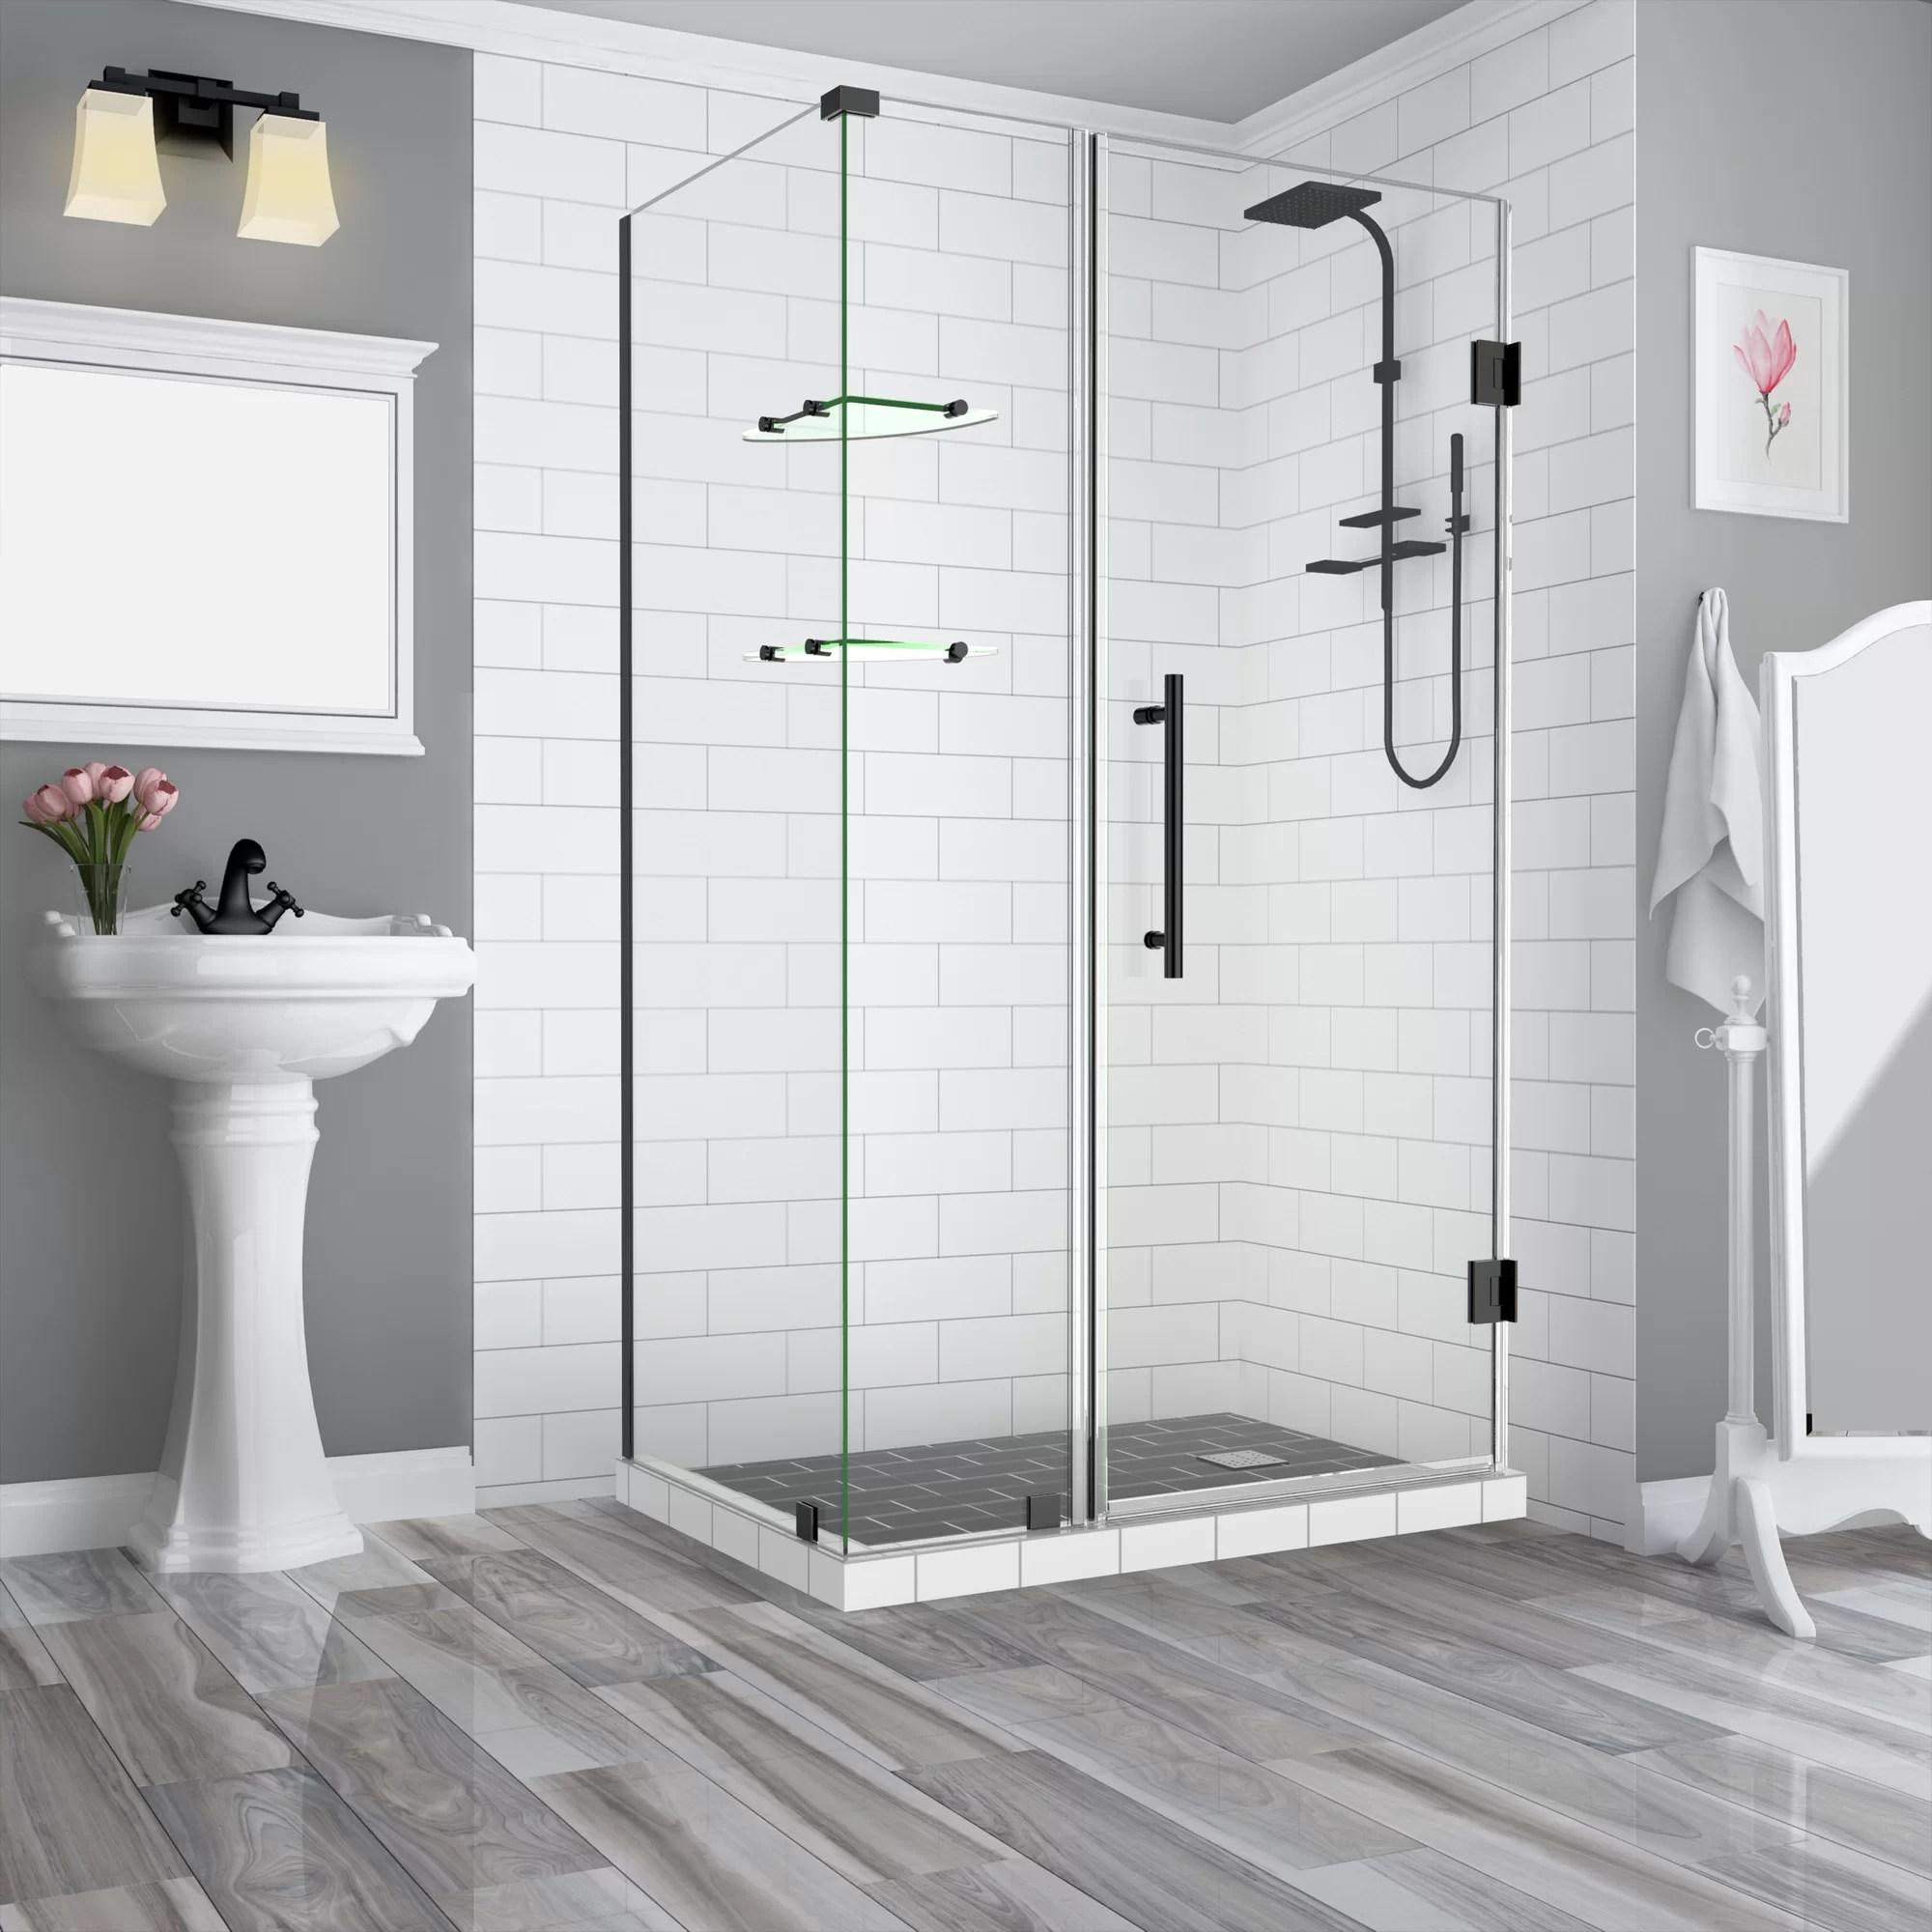 Details About Aston Bromley Gs 69 X 72 Hinged Semi Frameless Shower Door Oil Rubbed Bronze